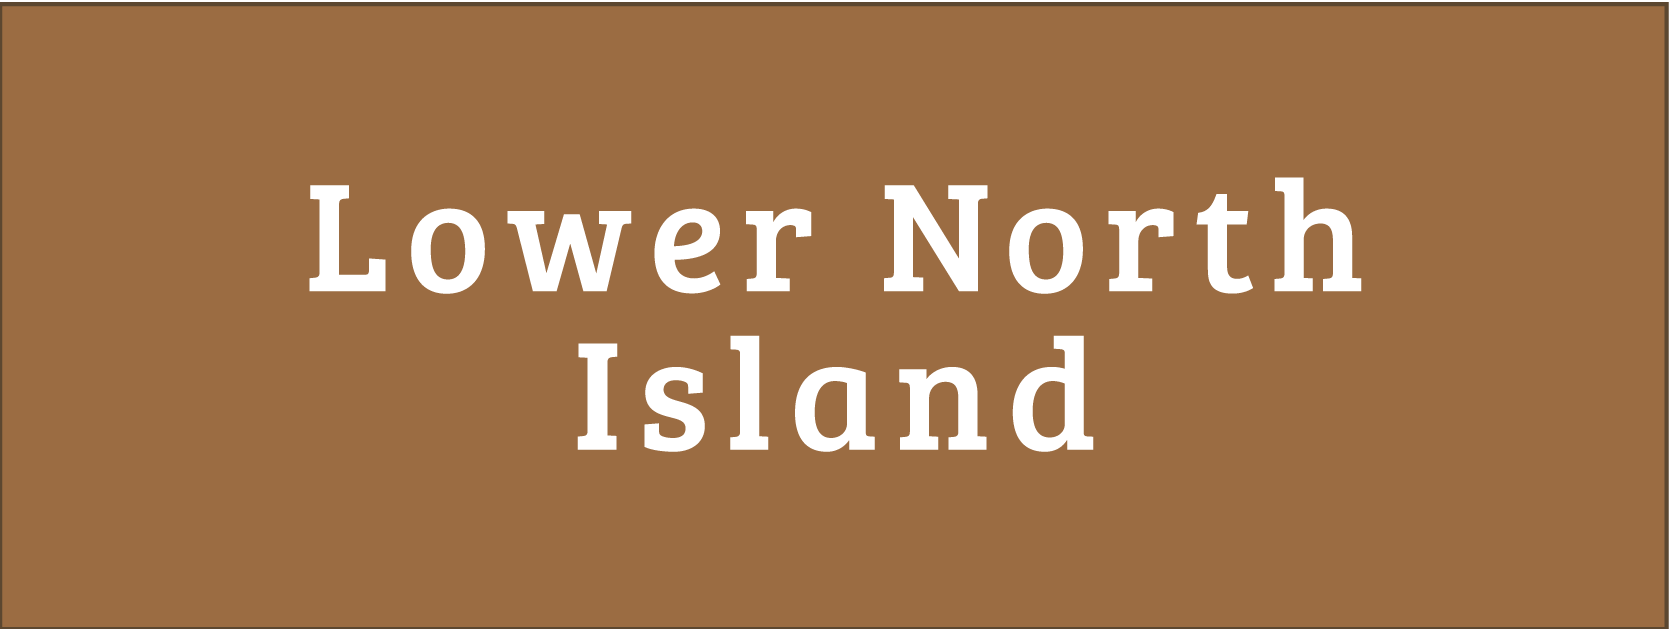 Lower North Island Areas for Disability Information Button